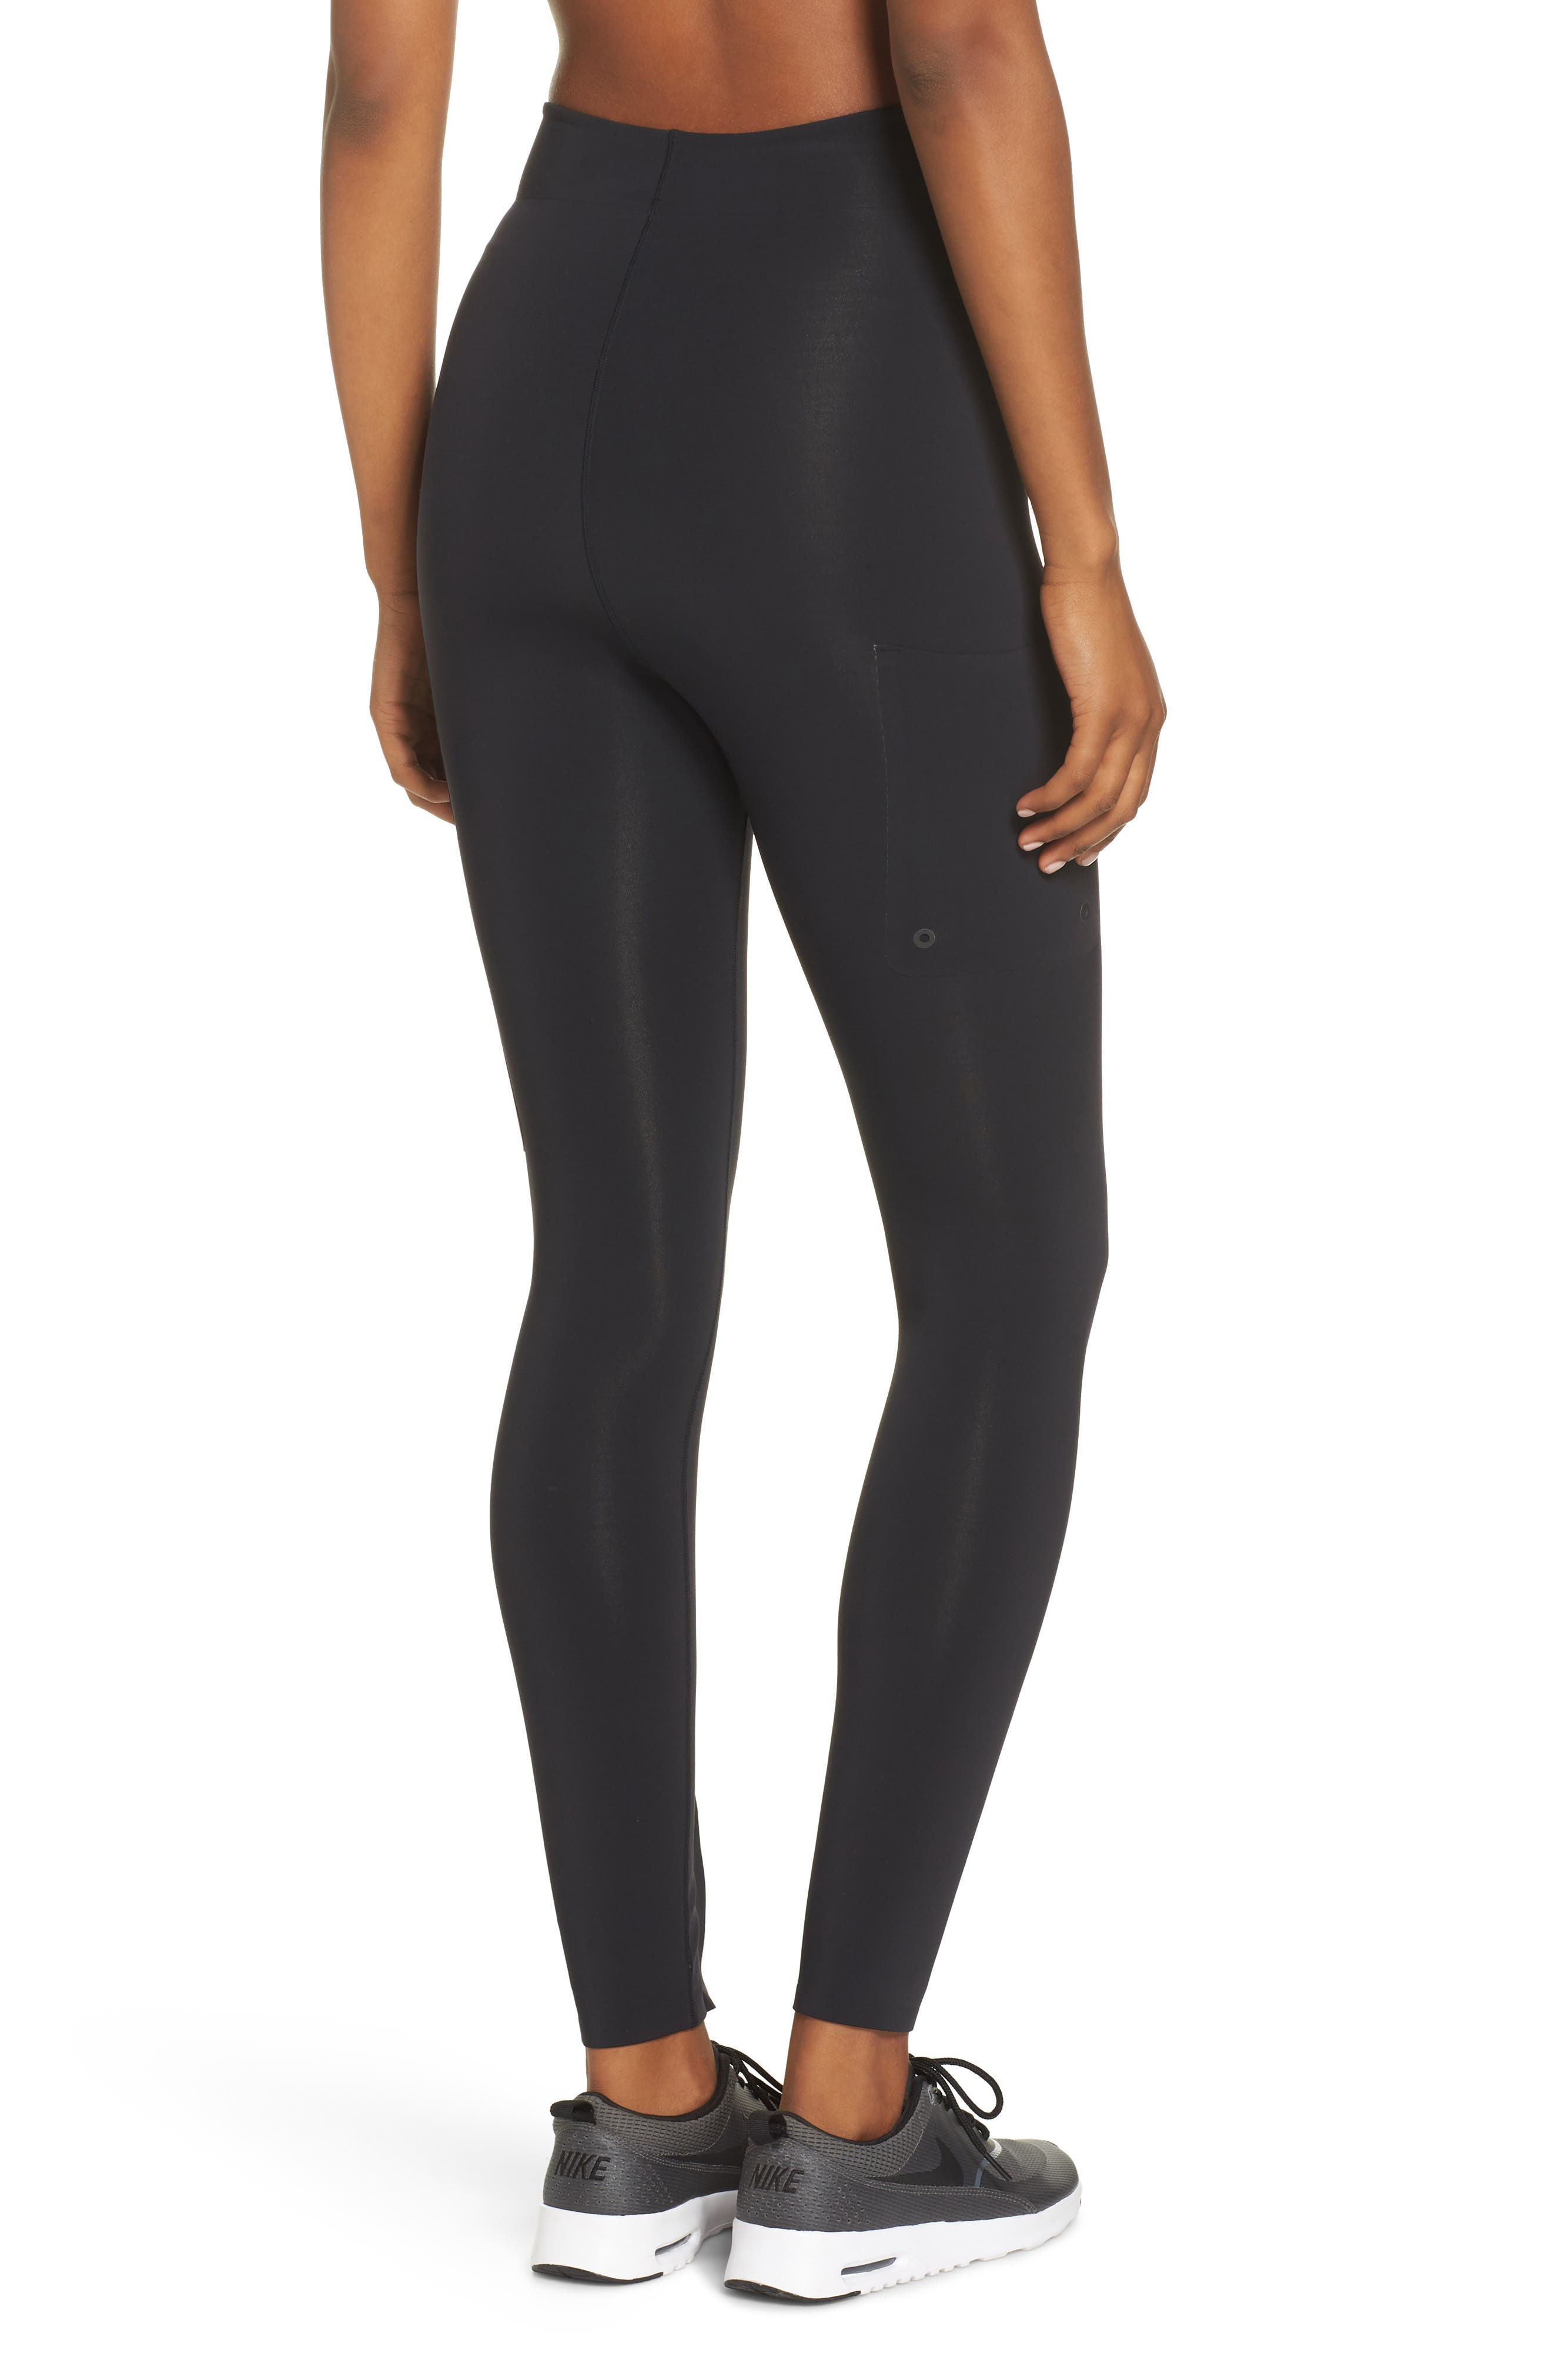 NikeLab XX Women's High Rise Training Tights,                             Alternate thumbnail 2, color,                             BLACK